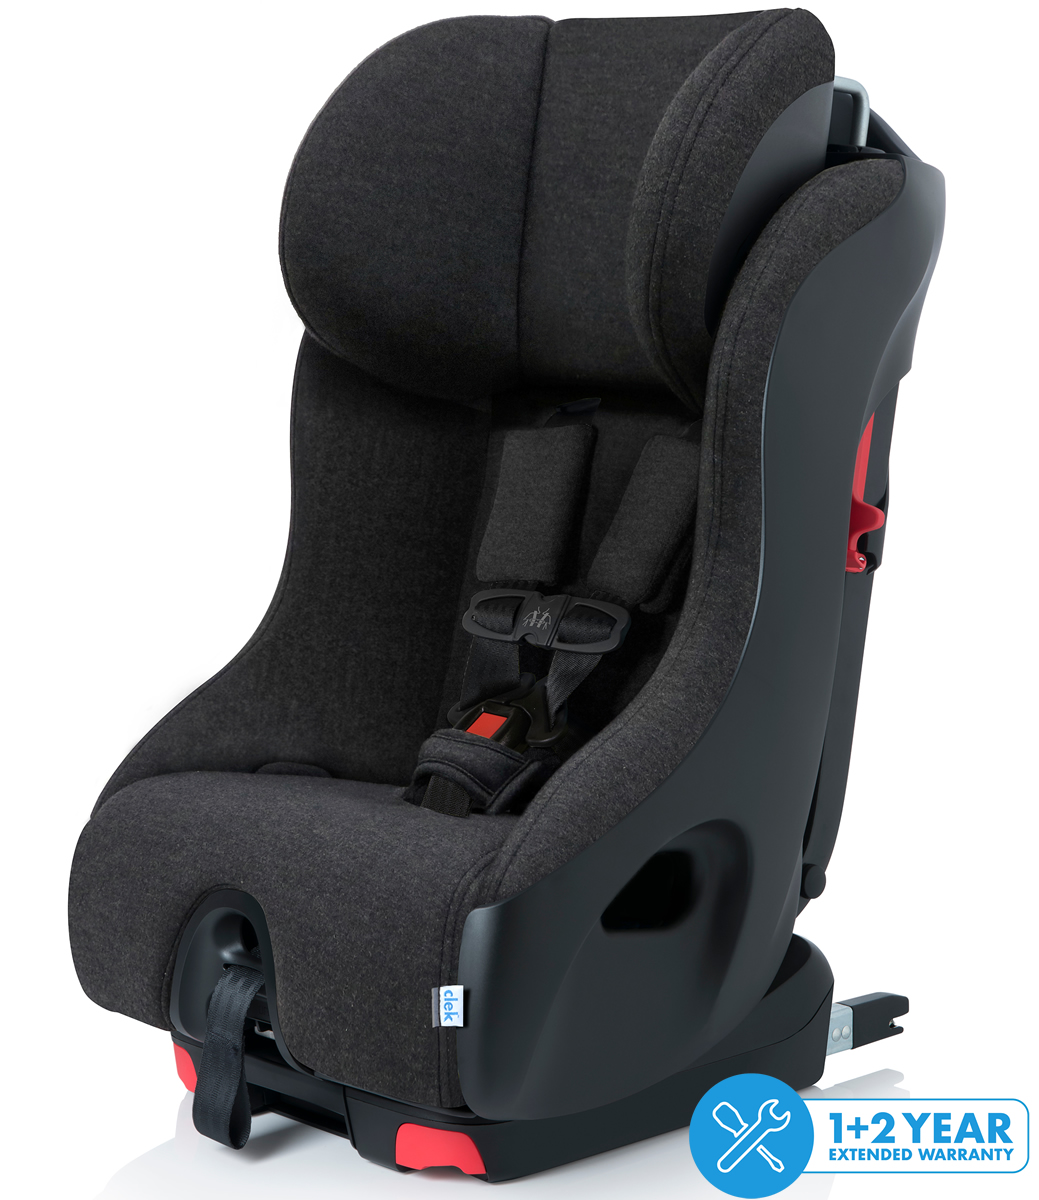 Clek Foonf 2018 Convertible Car Seat - Mammoth Wool